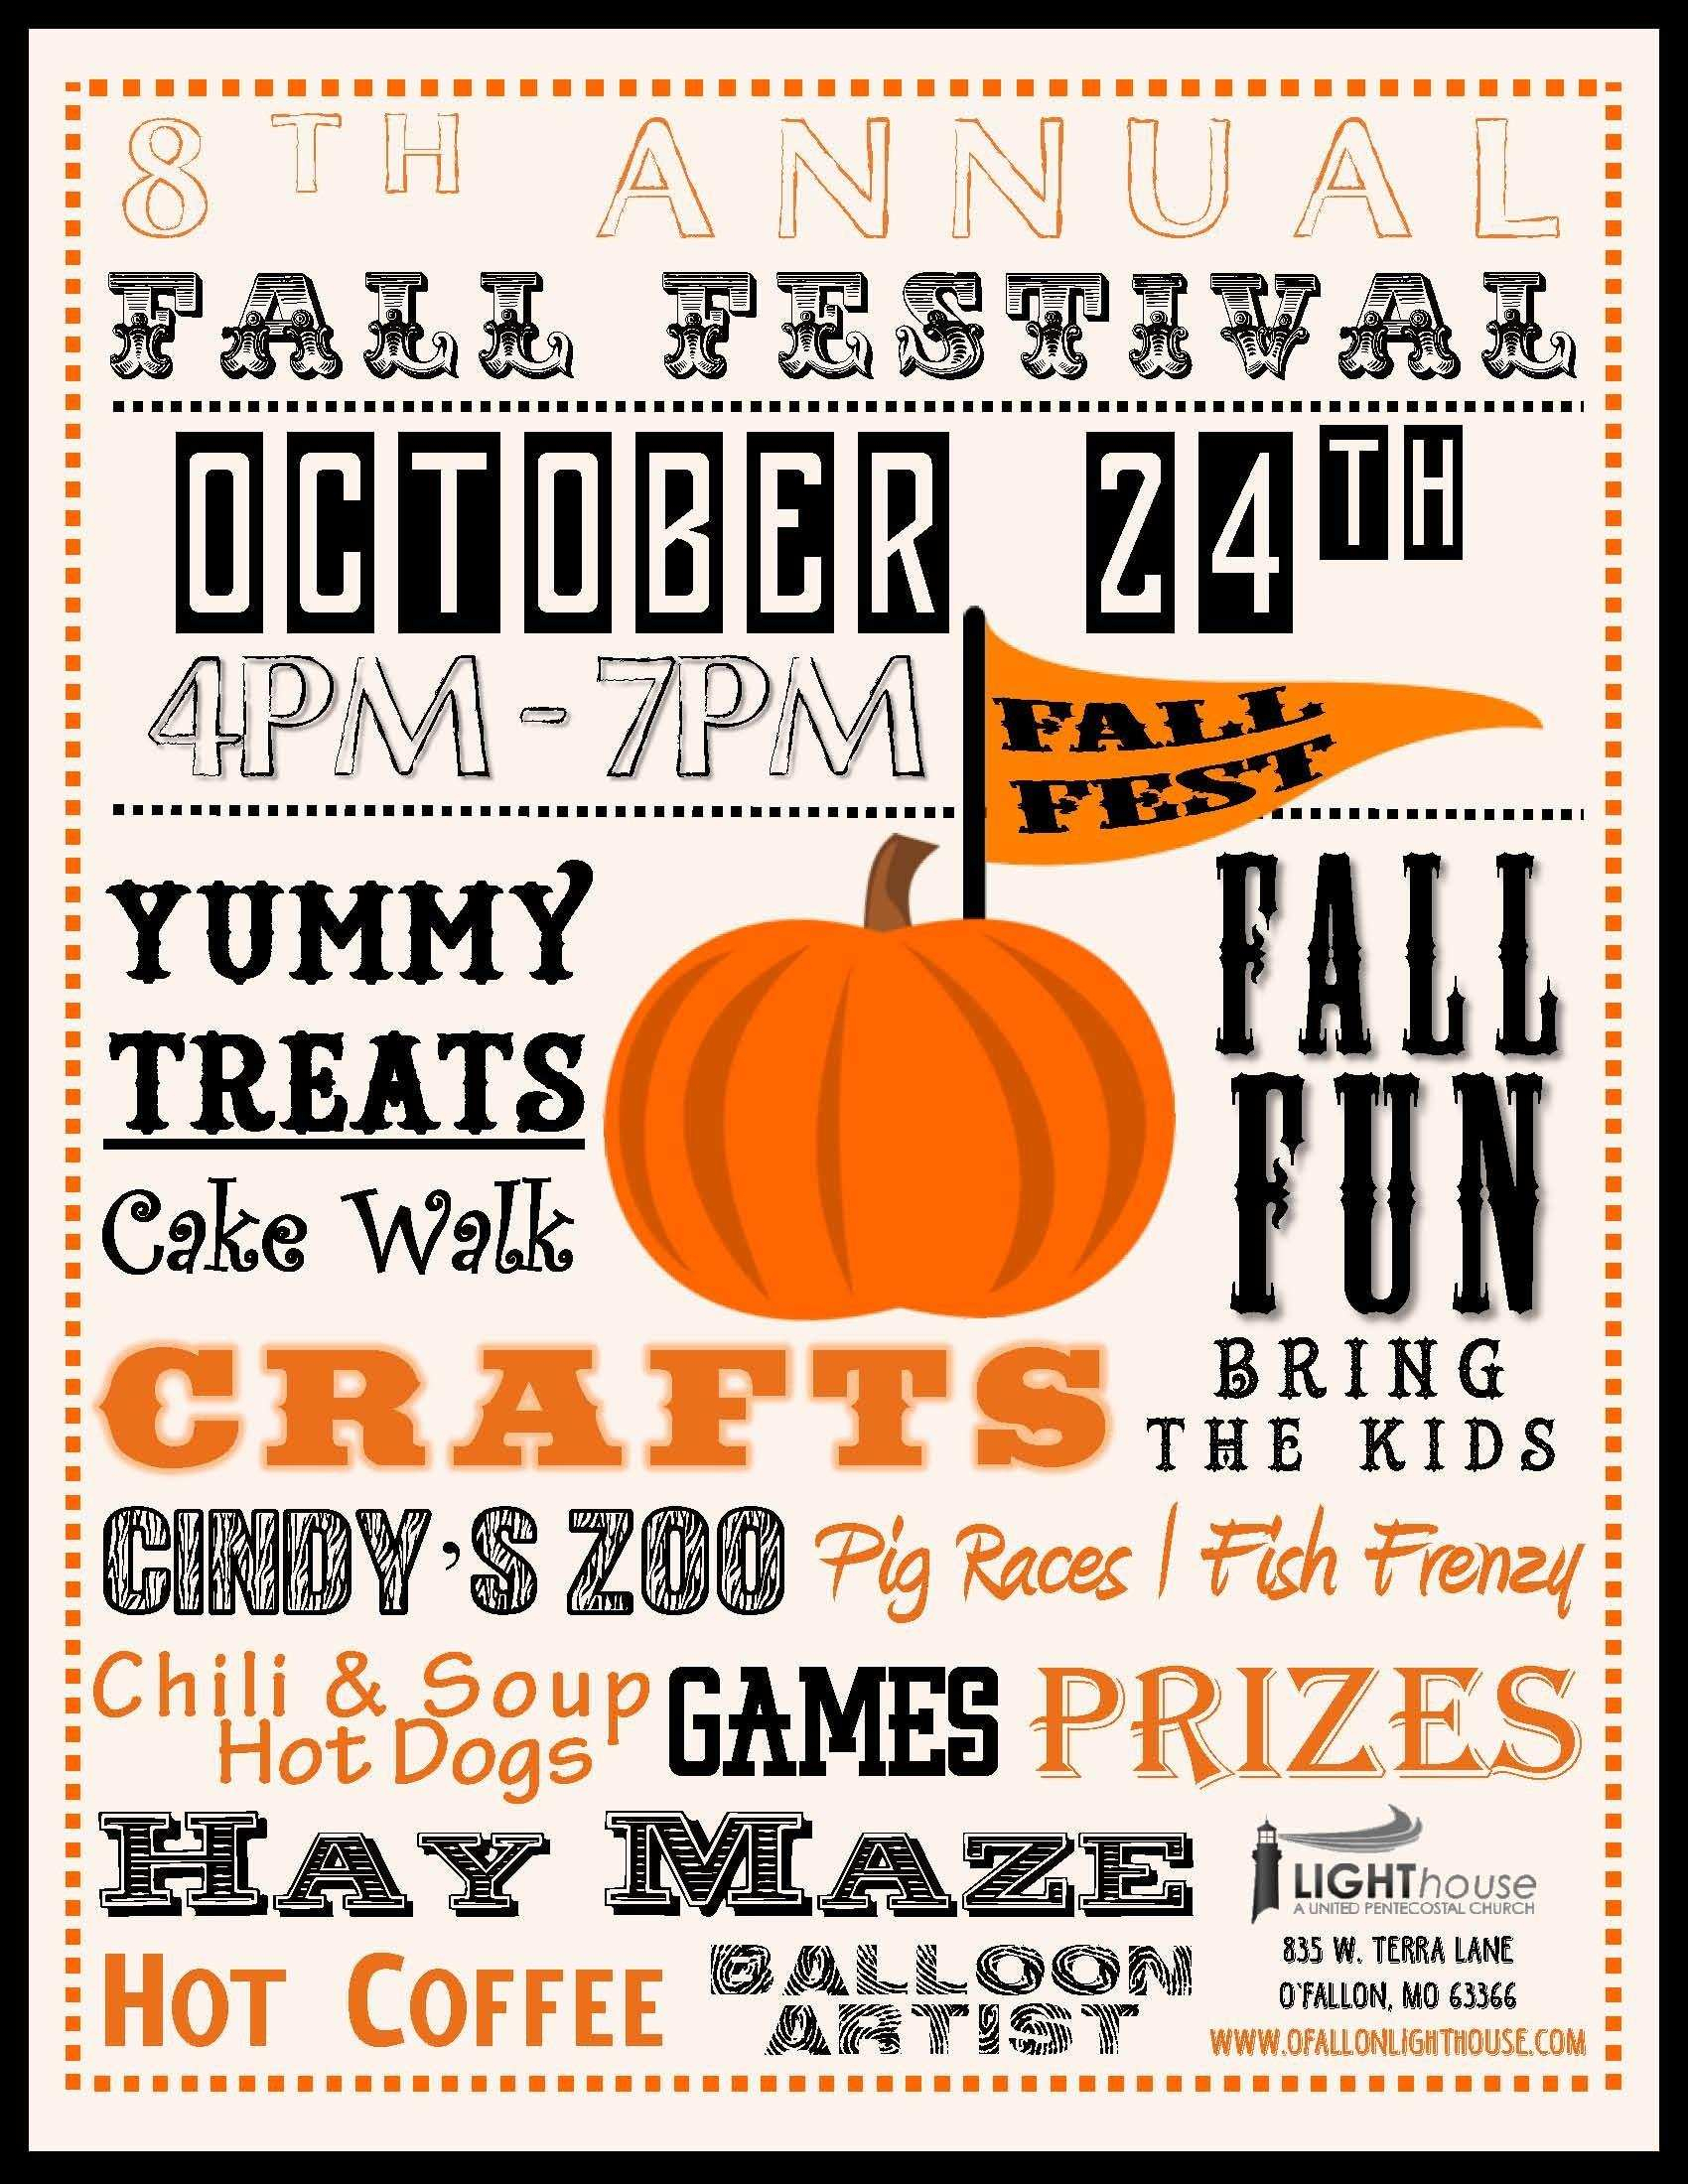 011 Free Church Fall Festival Flyer Template Printable Event - Free Printable Fall Festival Flyer Templates